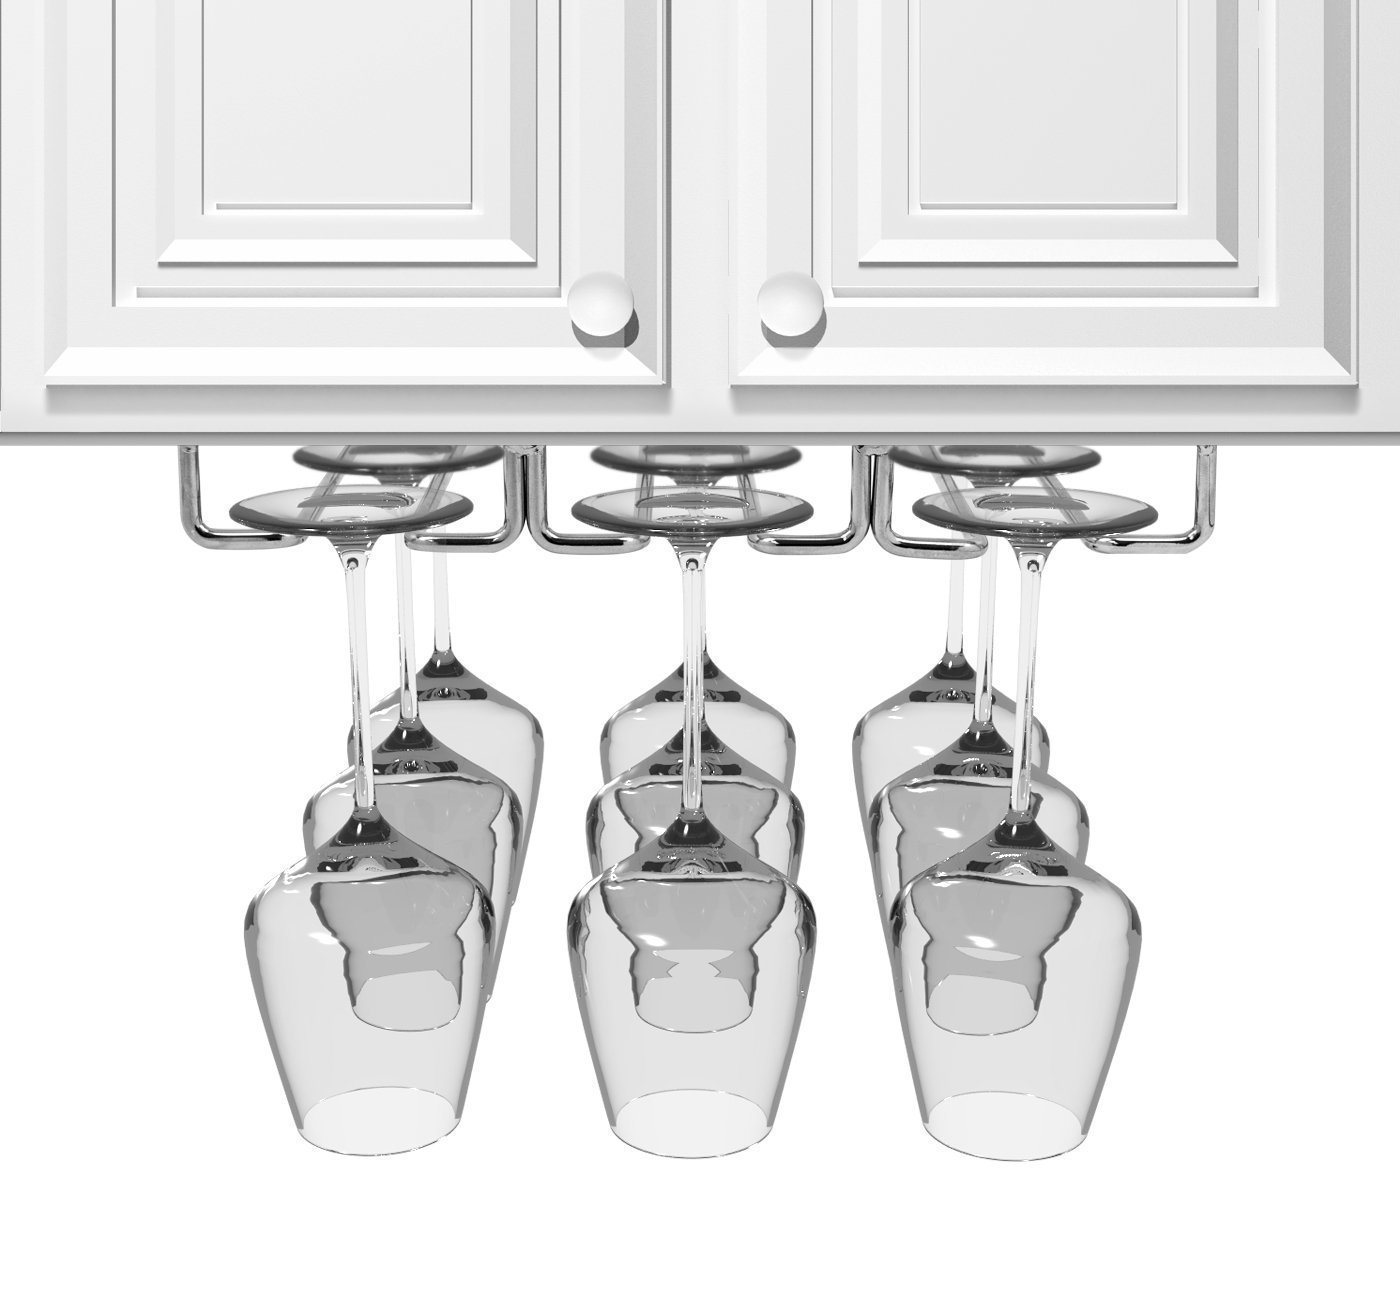 JMiles Under Cabinet Hanging Stemware Rack Hold Up To 9 Wine Glasses (Chrome)